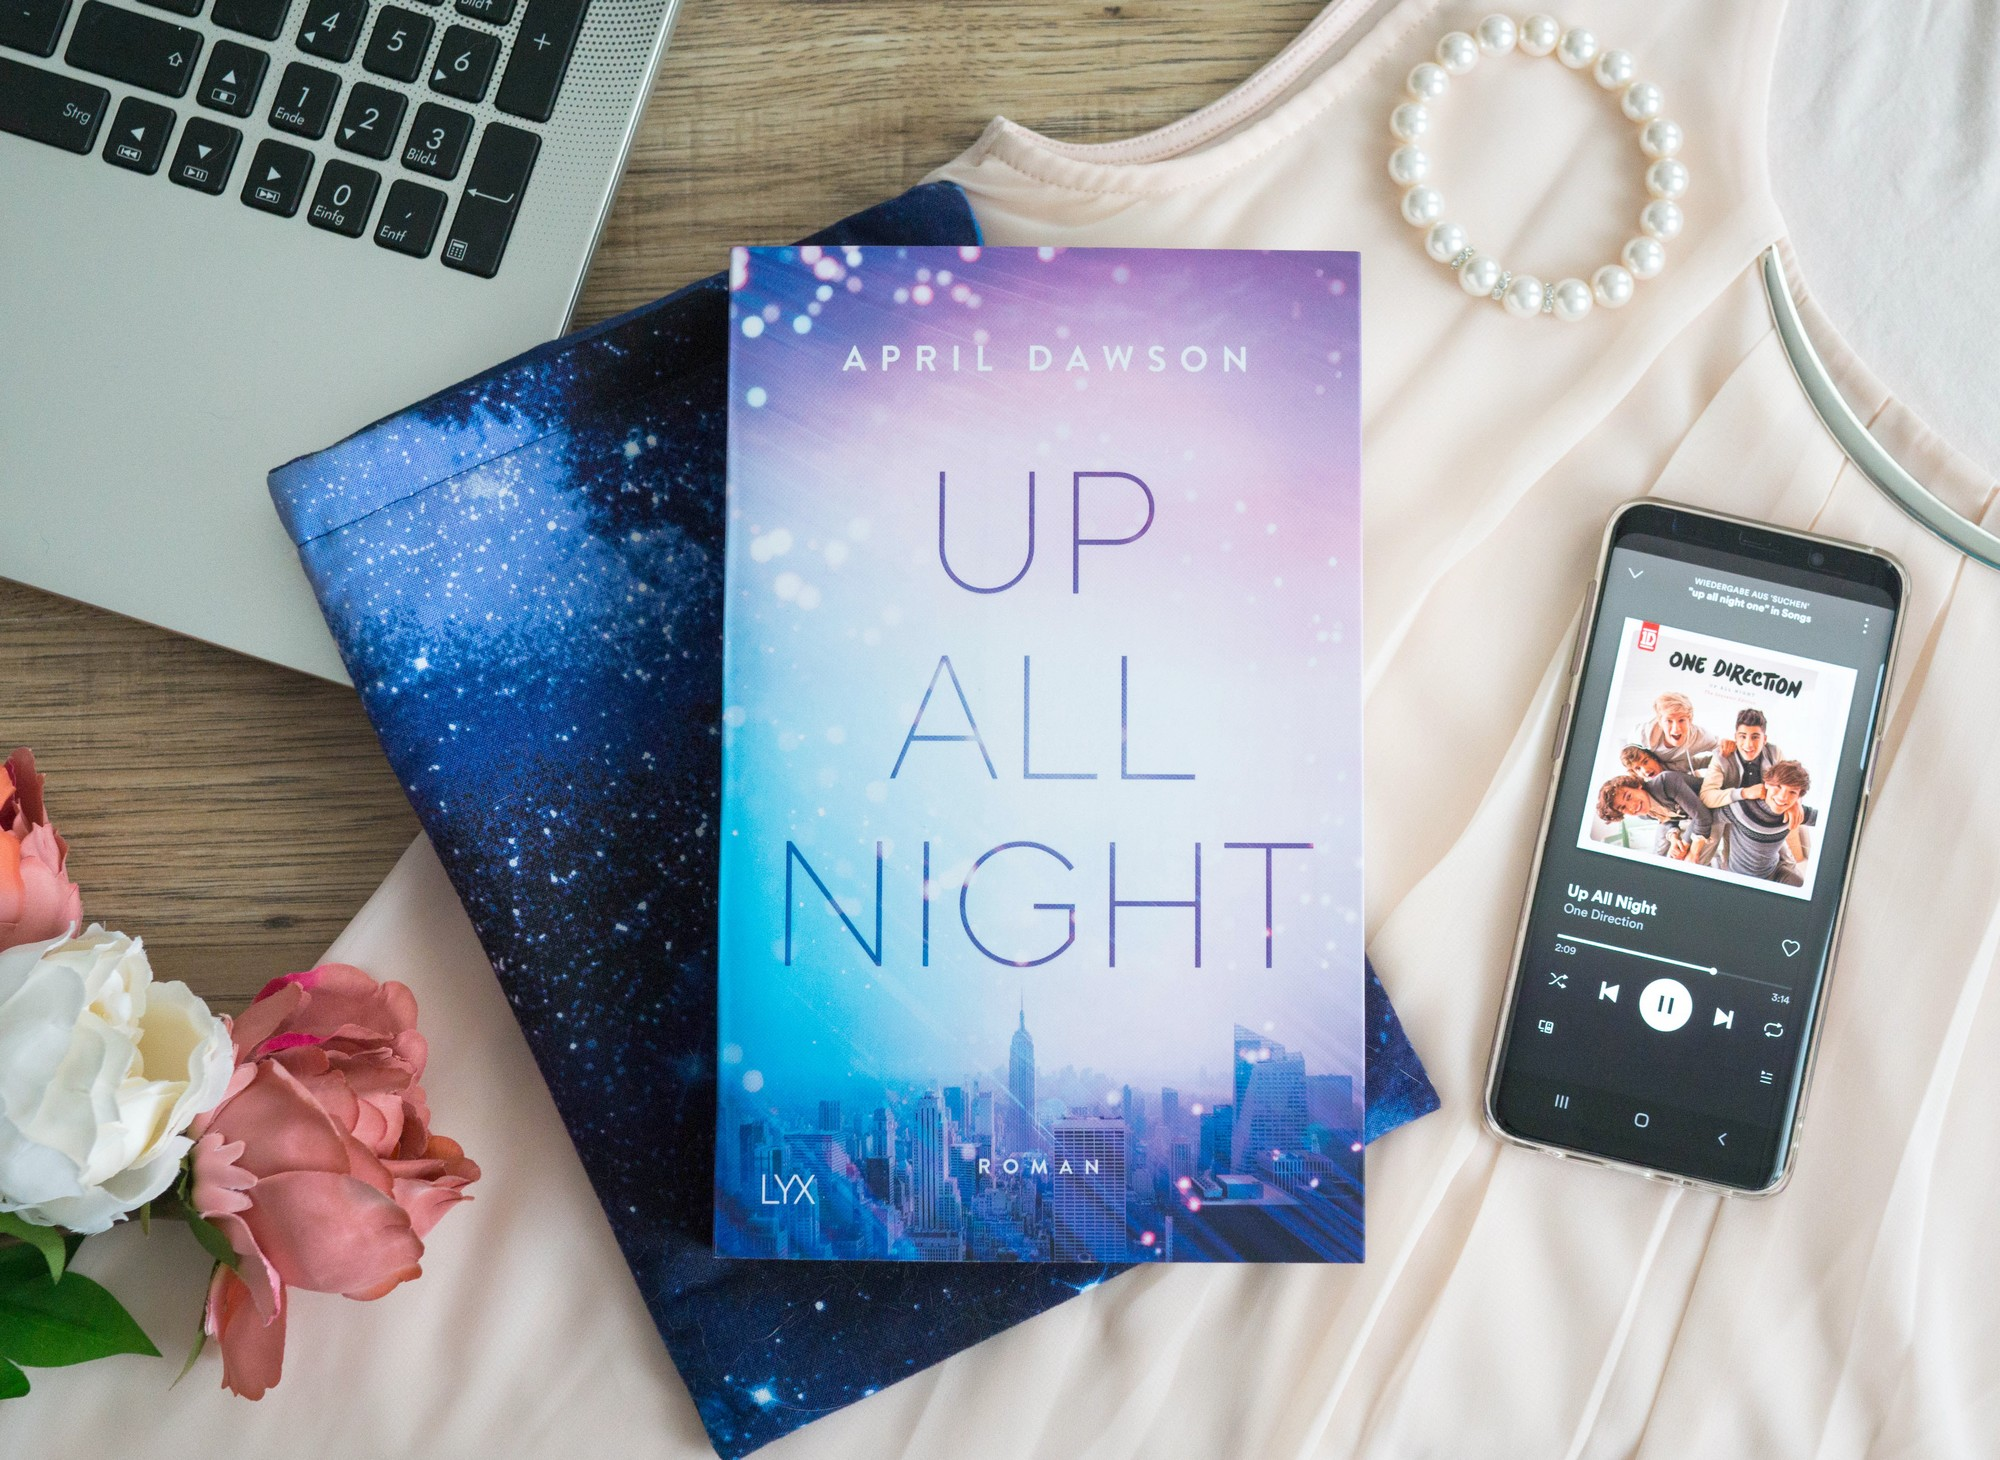 Up All Night – April Dawson